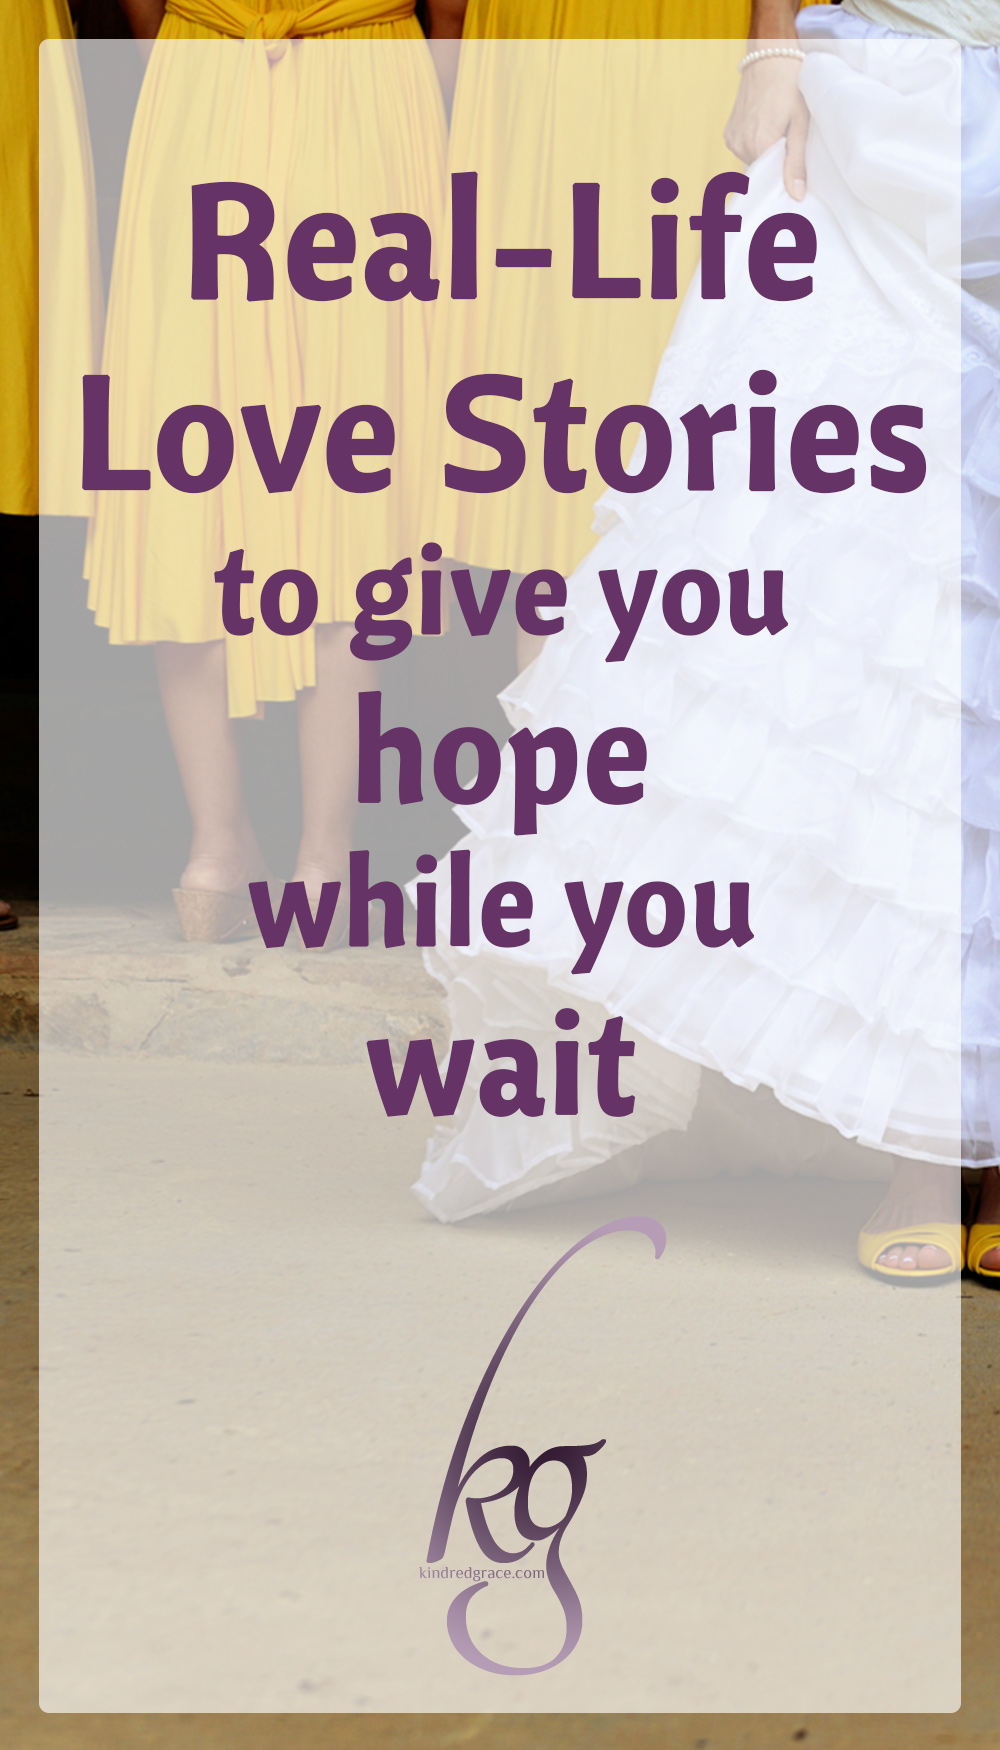 True stories show me another facet of our Heavenly Father. They help me glimpse how He works, and Who He is.While we're waiting, why not enjoy these stories  that – in the end – are really all about Him? via @KindredGrace